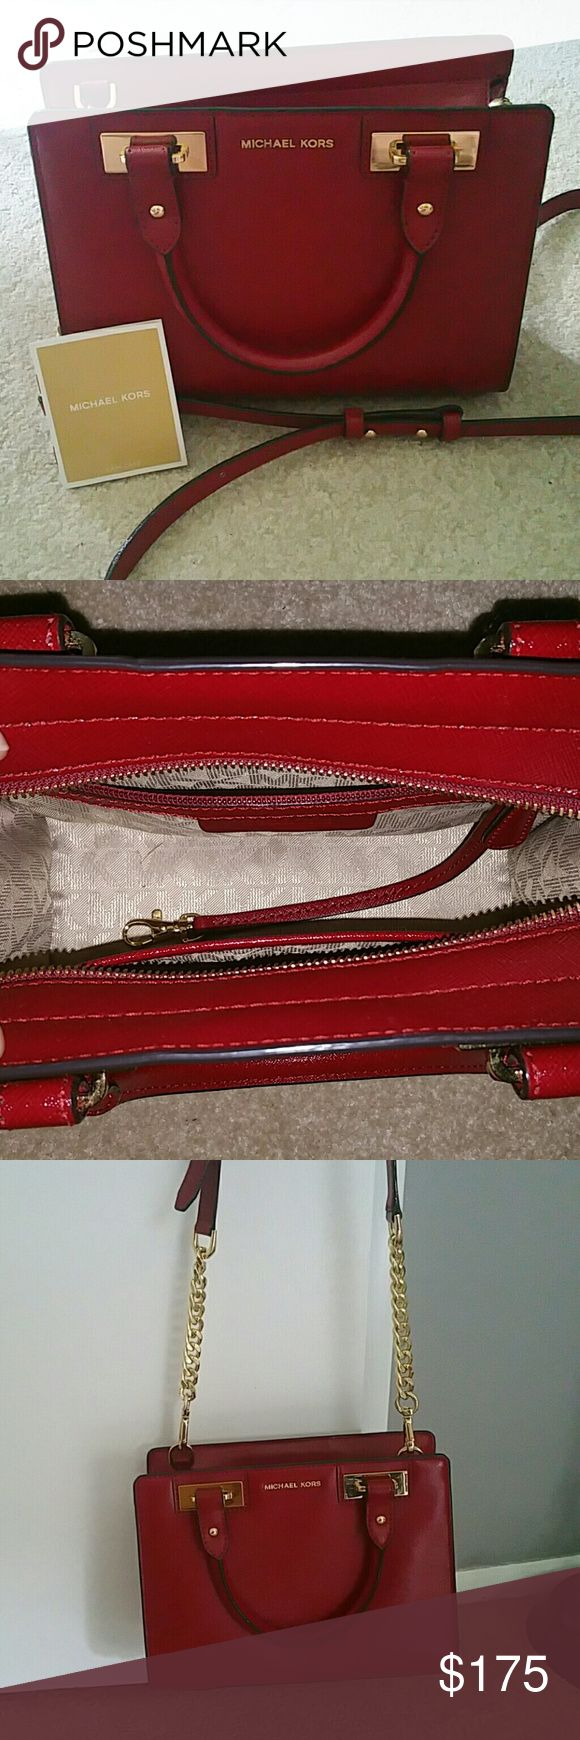 Michael Kors Crossbody Purse Red Crossbody Michael Kors Selma purse, bought brand new from Dillard's this winter and decided it wasn't my style. Michael Kors Collection Bags Crossbody Bags